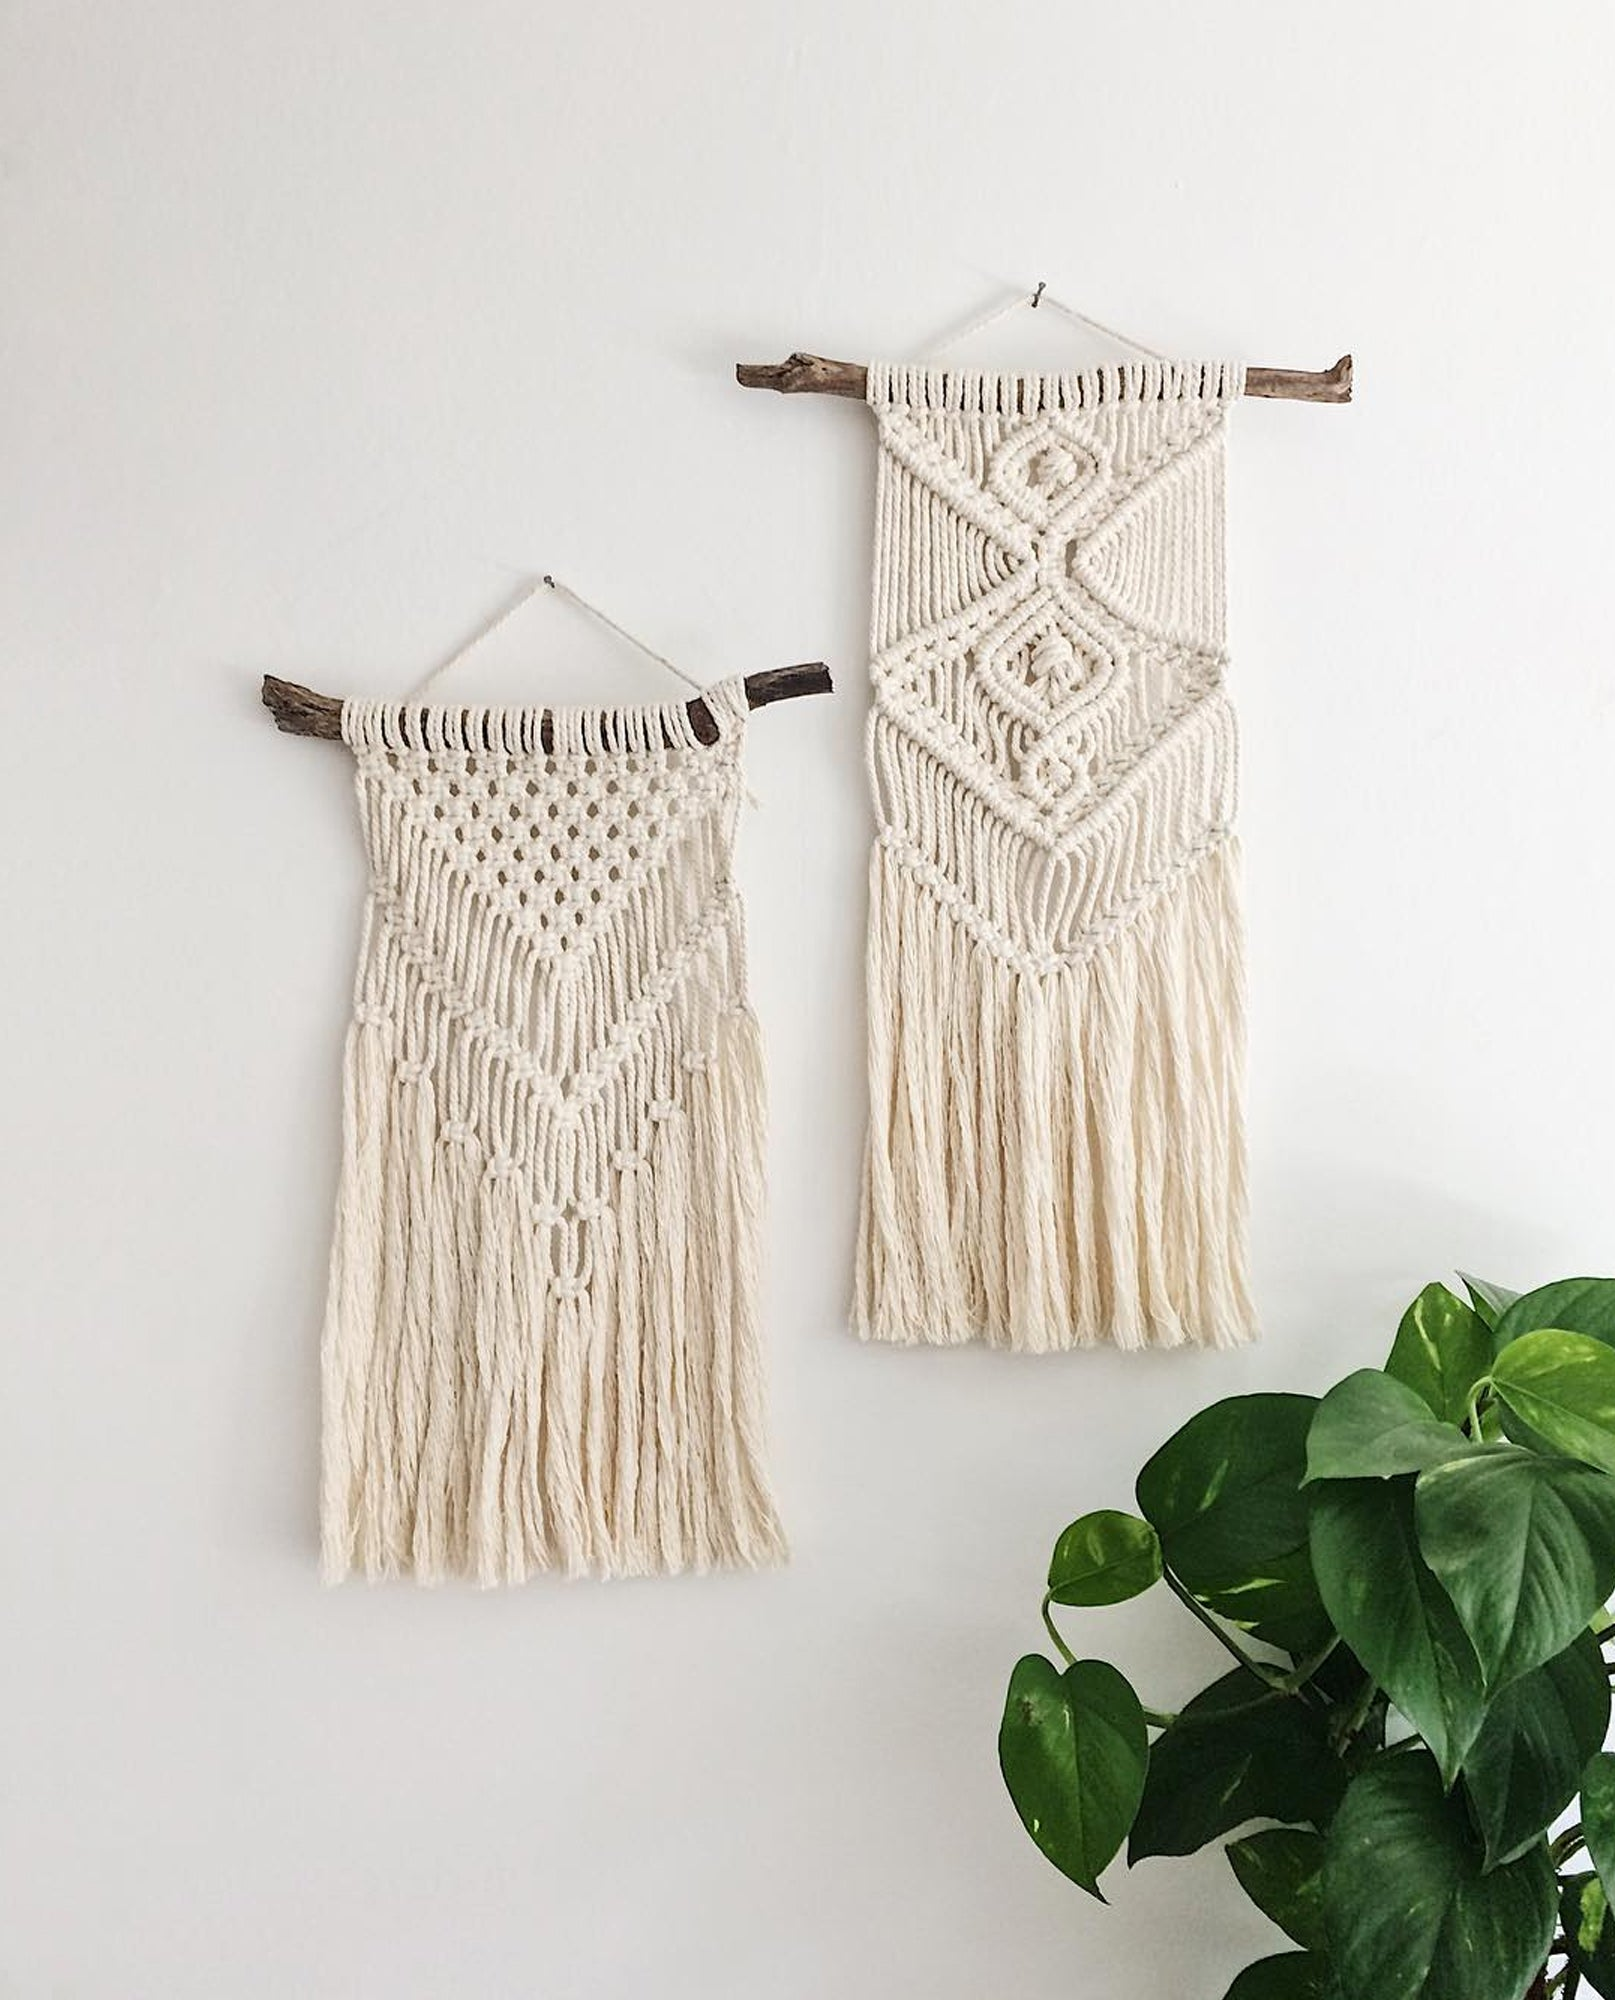 Macrame Wall Hanging Workshop | Sunday 16th September